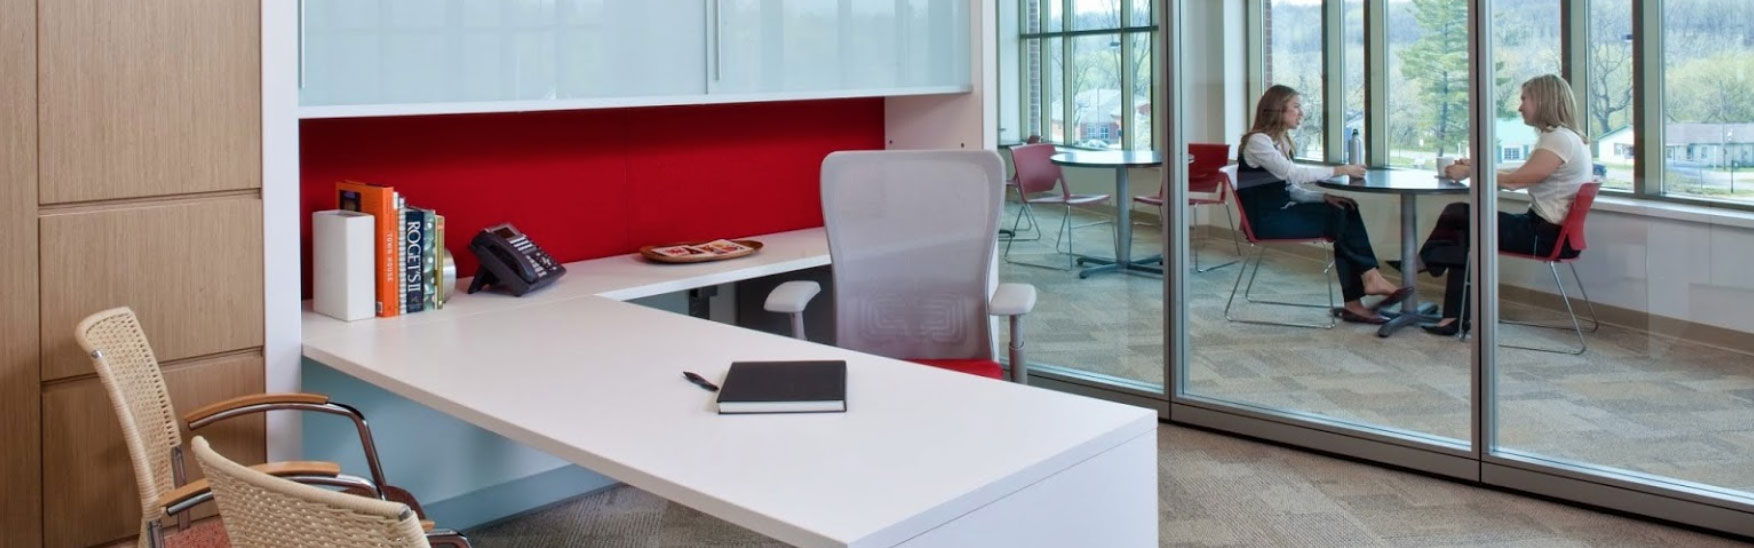 office space for rent in newaygo michigan, newaygo county business resources such as meeting rooms, remote work space and conference rooms